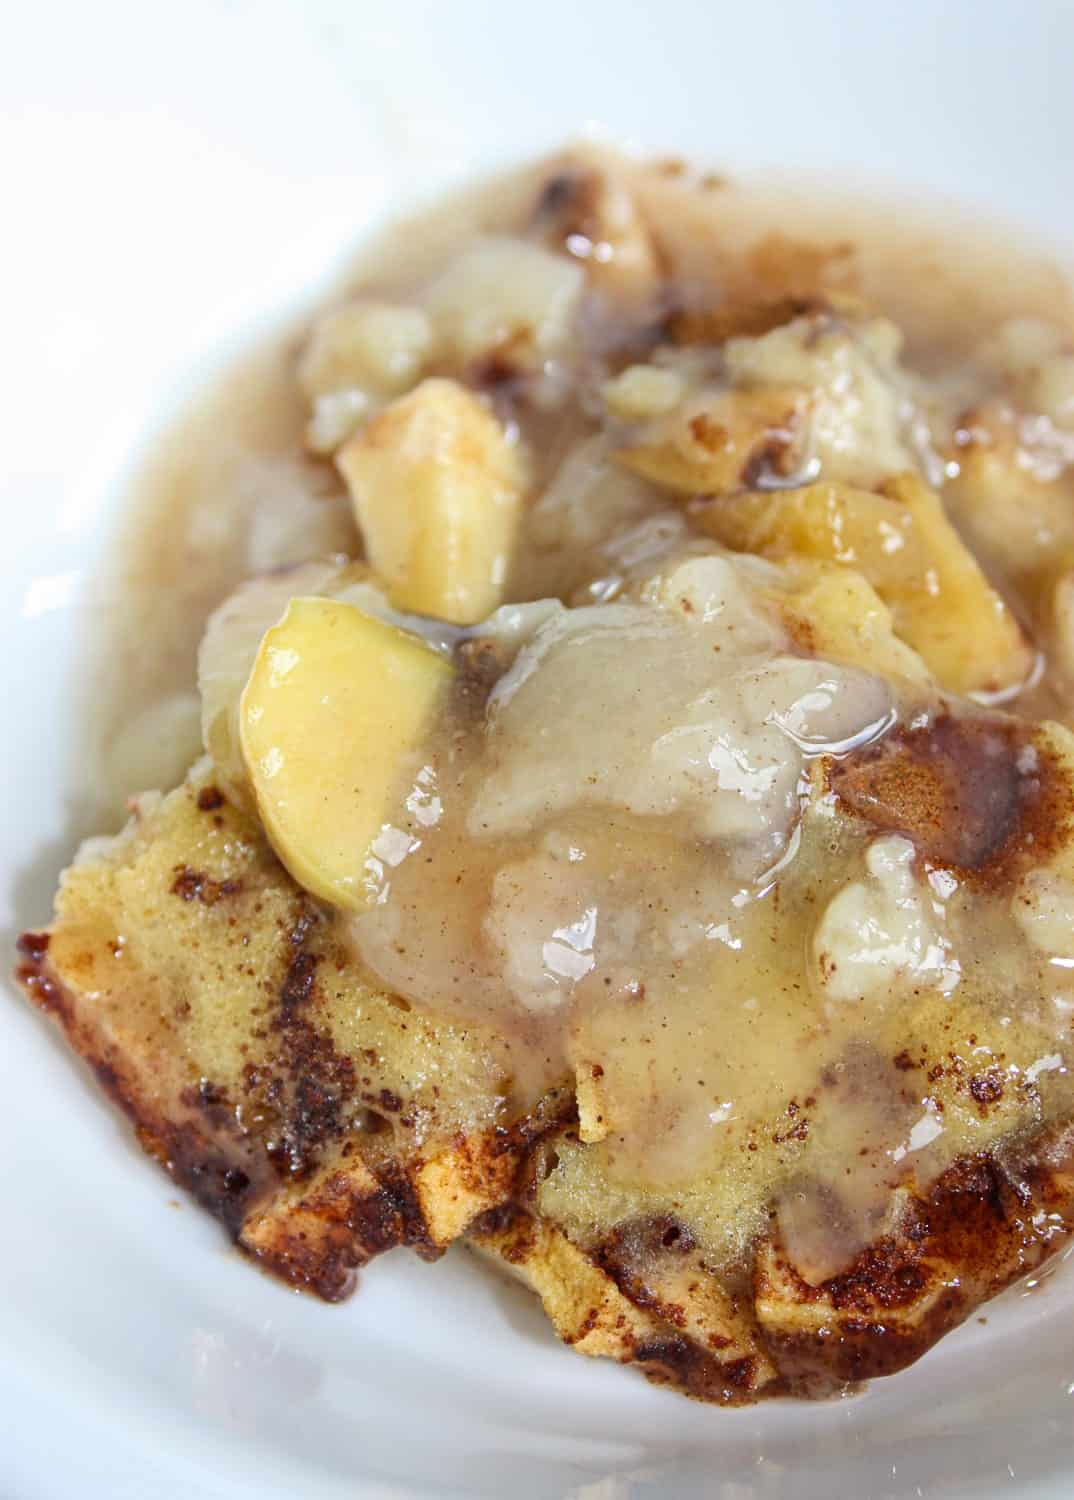 It is apple picking time on the farm and it is a very bountiful year. Apple Pudding is one delicious and easy way to make sure no apples go to waste!